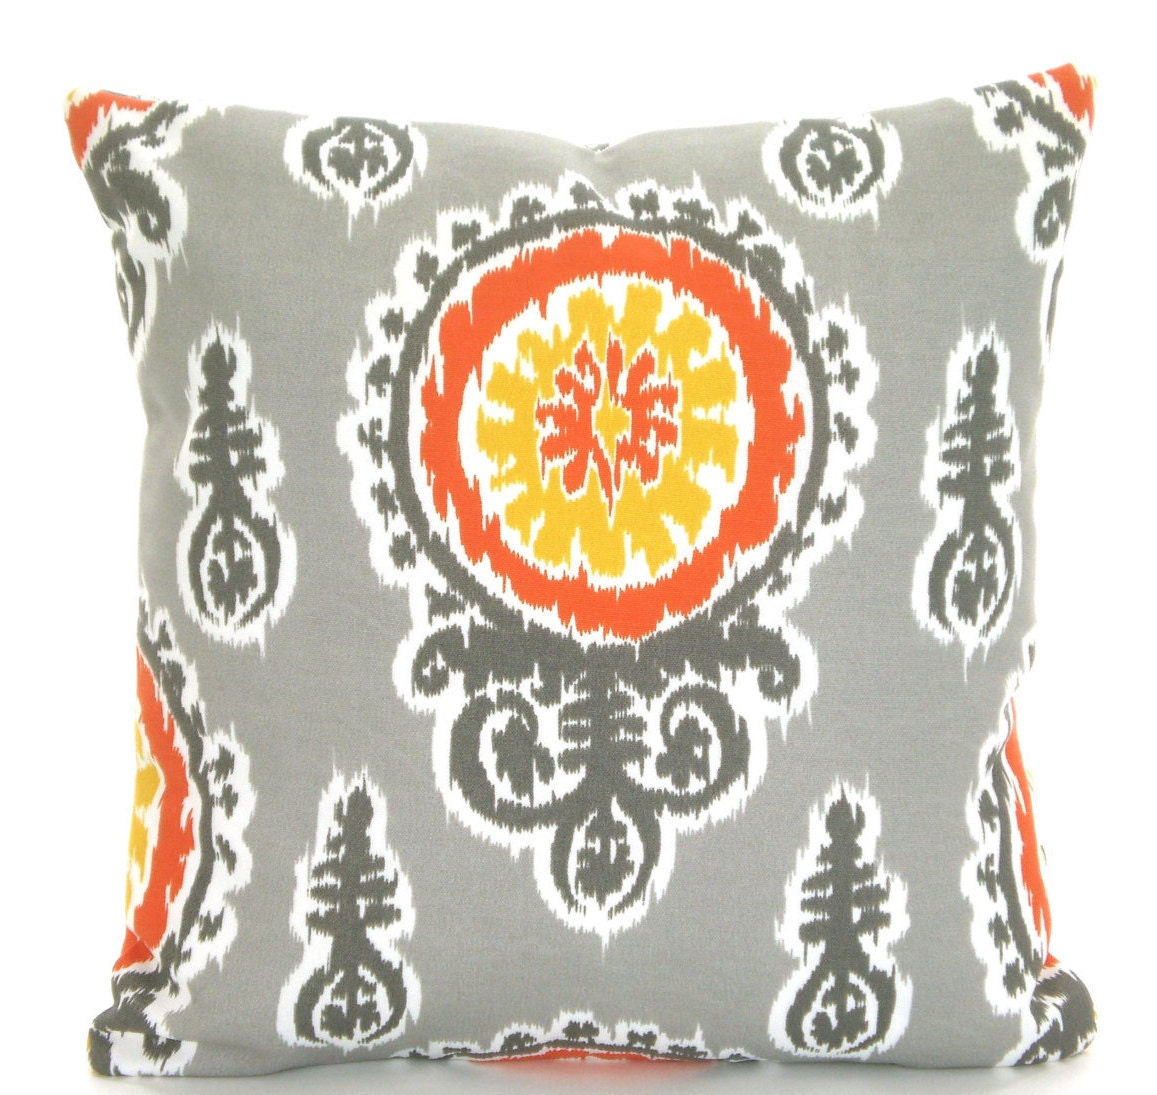 Throw Pillow Etsy : OUTDOOR Pillow Covers Throw Pillows Cushions Yellow Gray